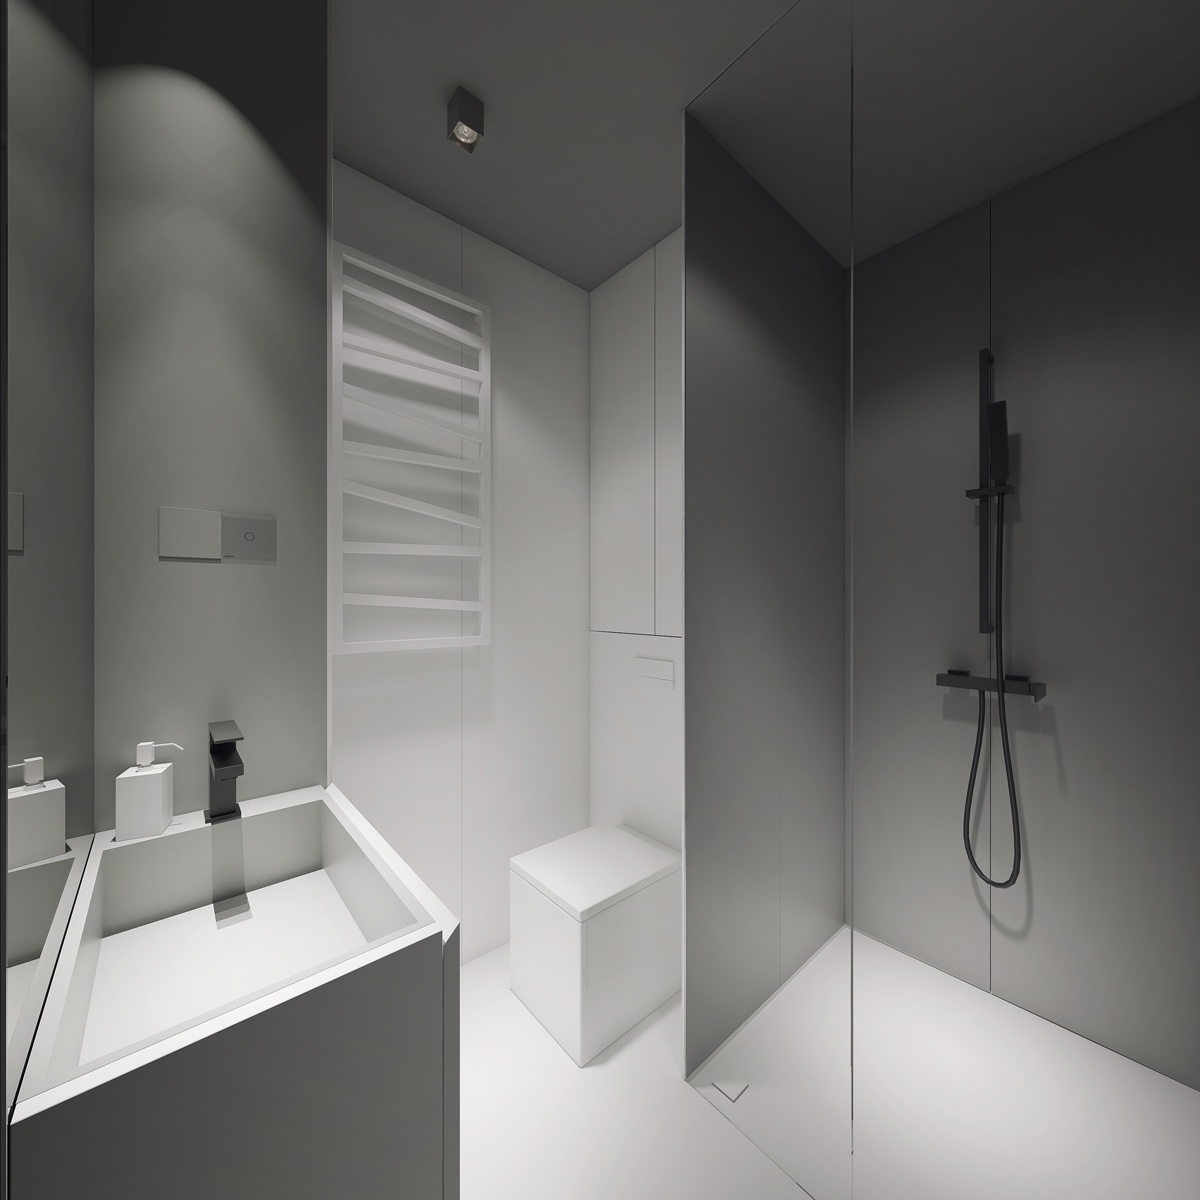 Simple Bathroom: 3 Light, White And Minimalist Homes Inspiring Clarity Of